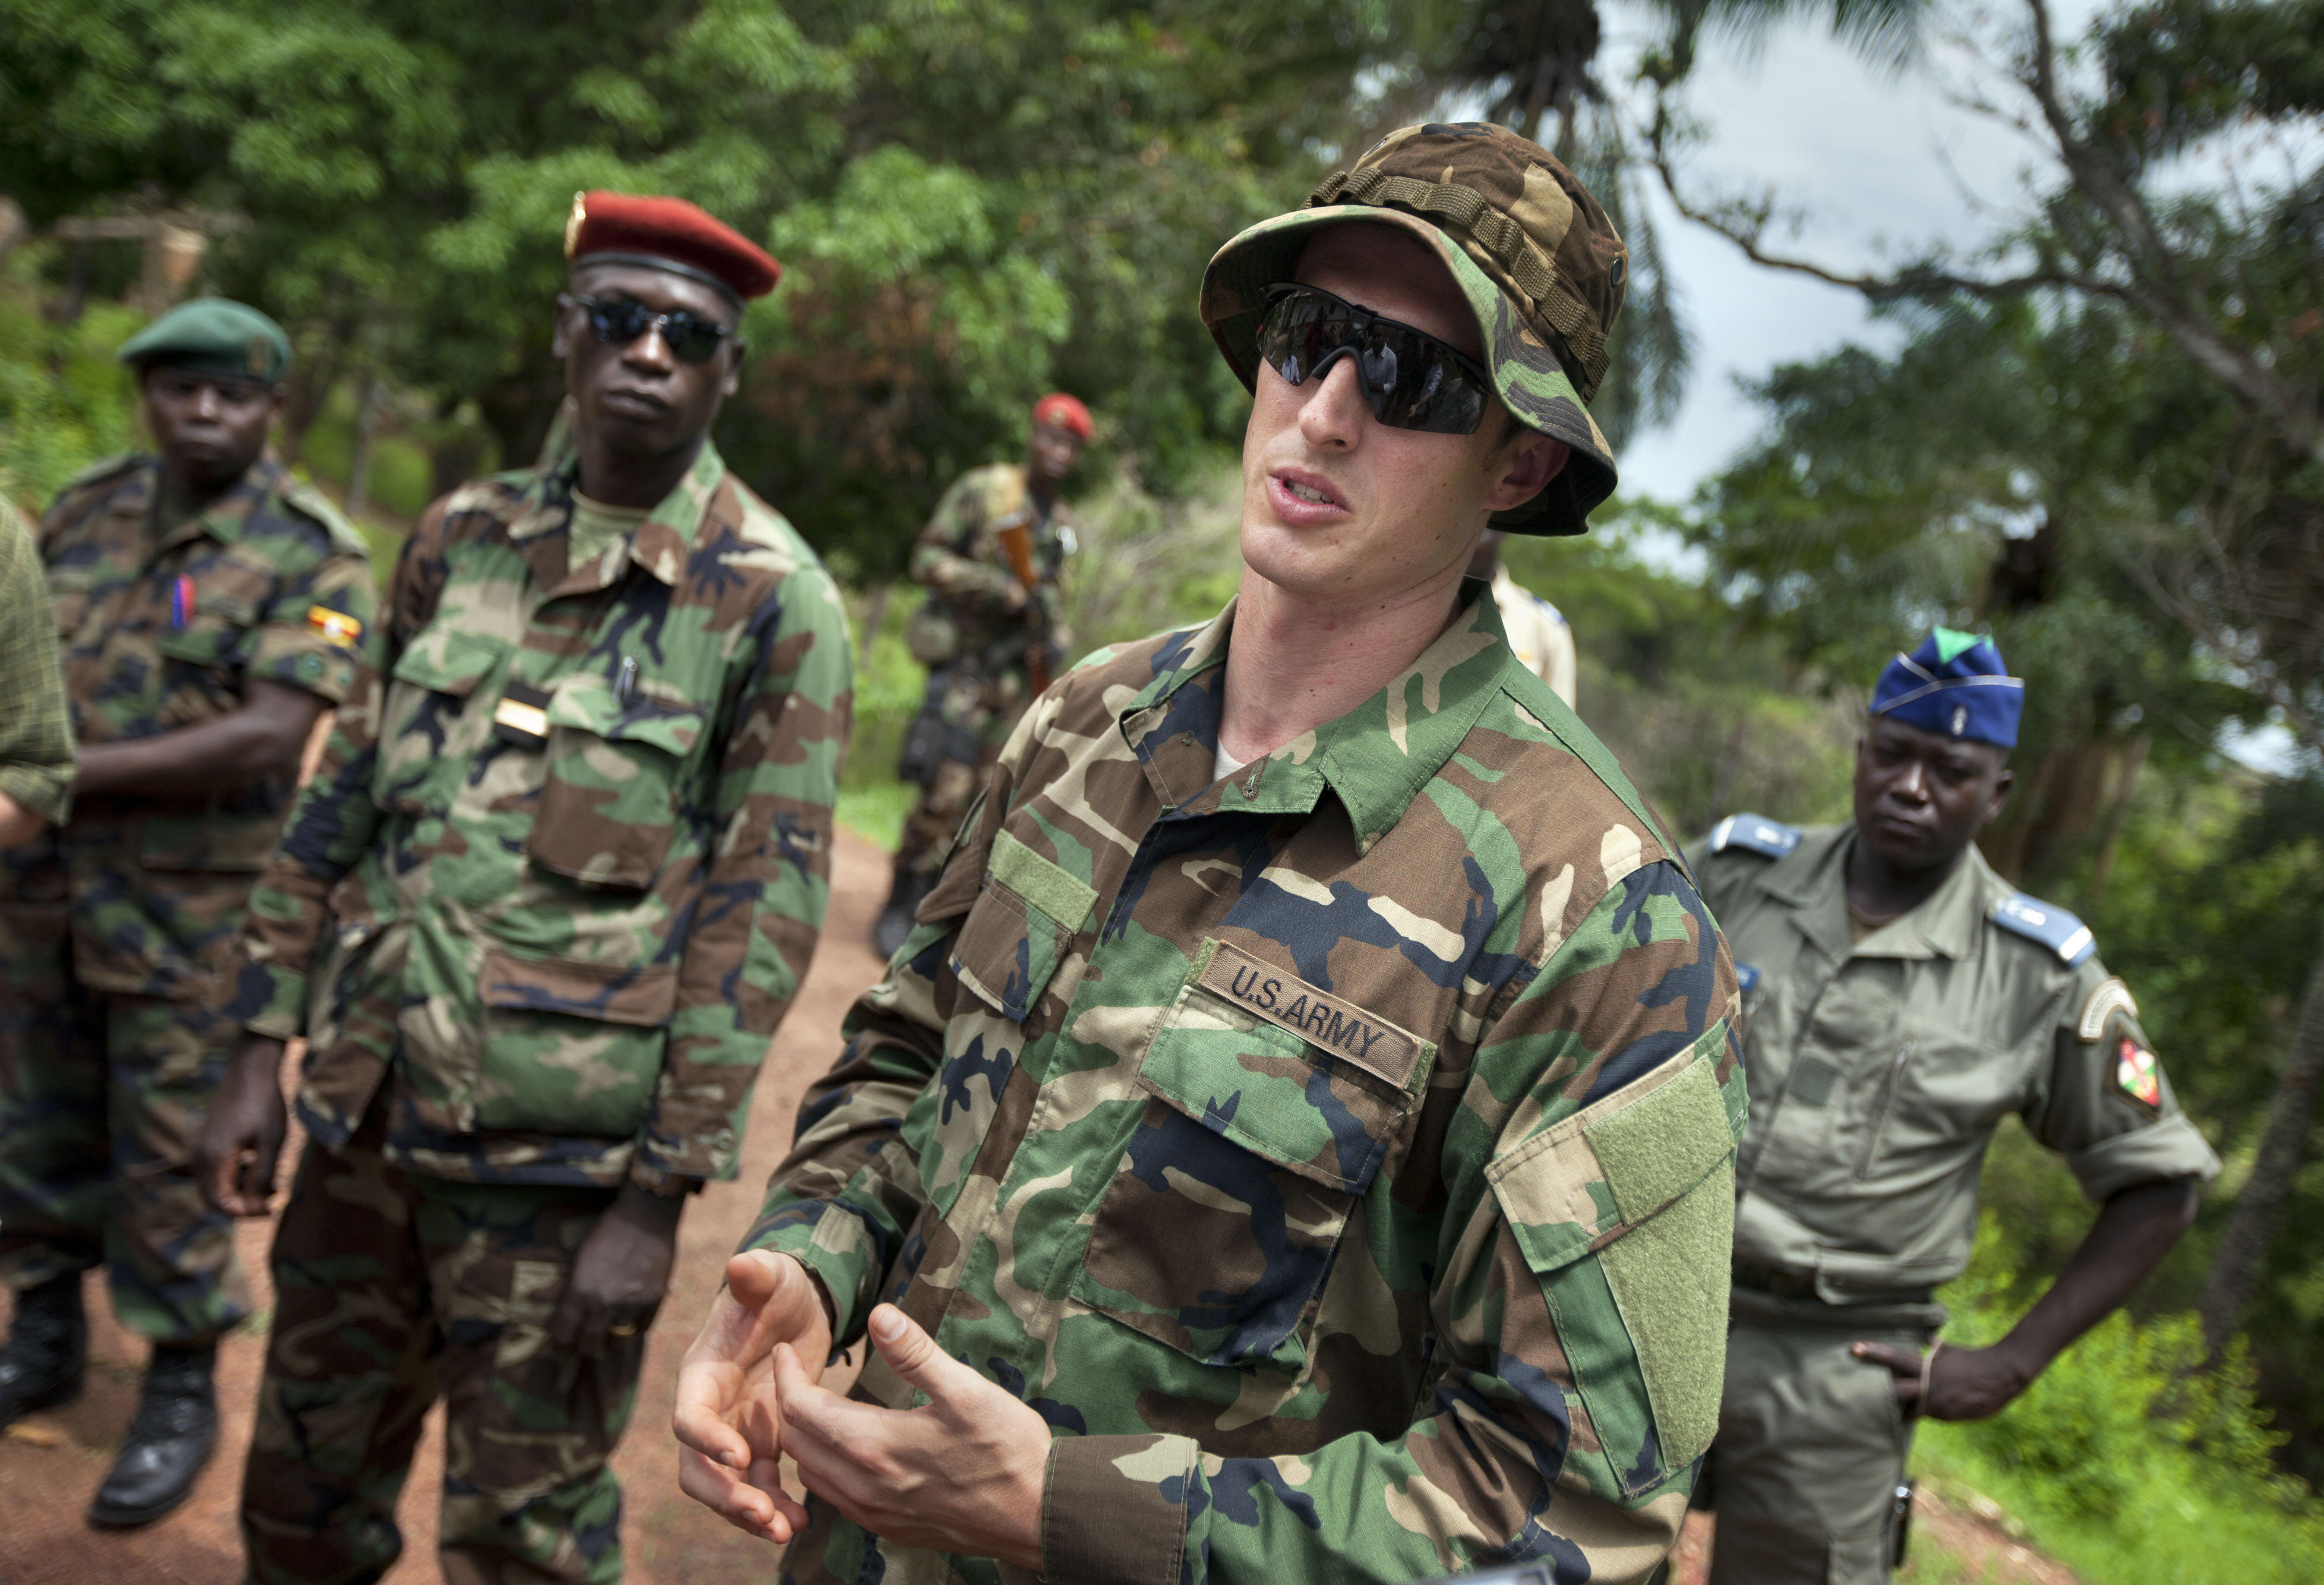 Policy Alert: The United States and Uganda Should Remain Committed to Ending  the Lord's Resistance Army